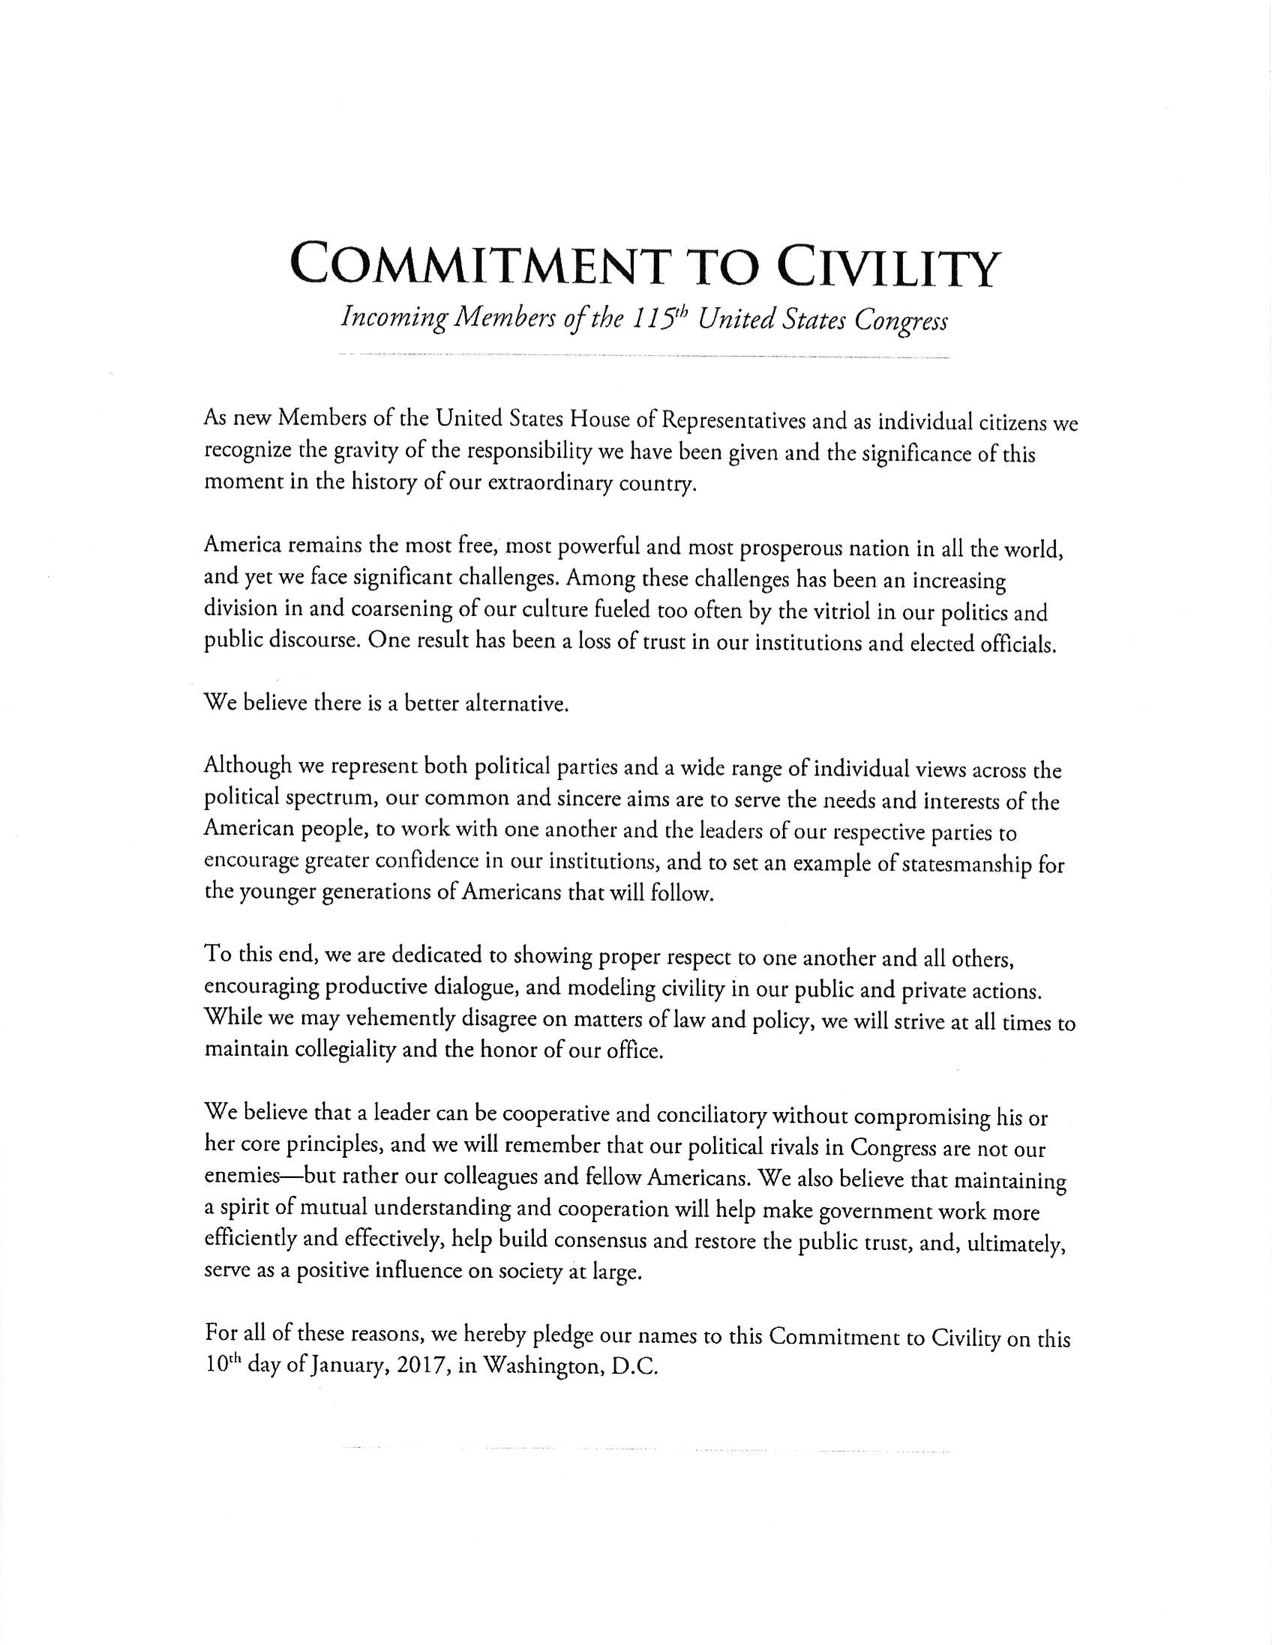 rep. johnson, 49 freshman members sign commitment to civility